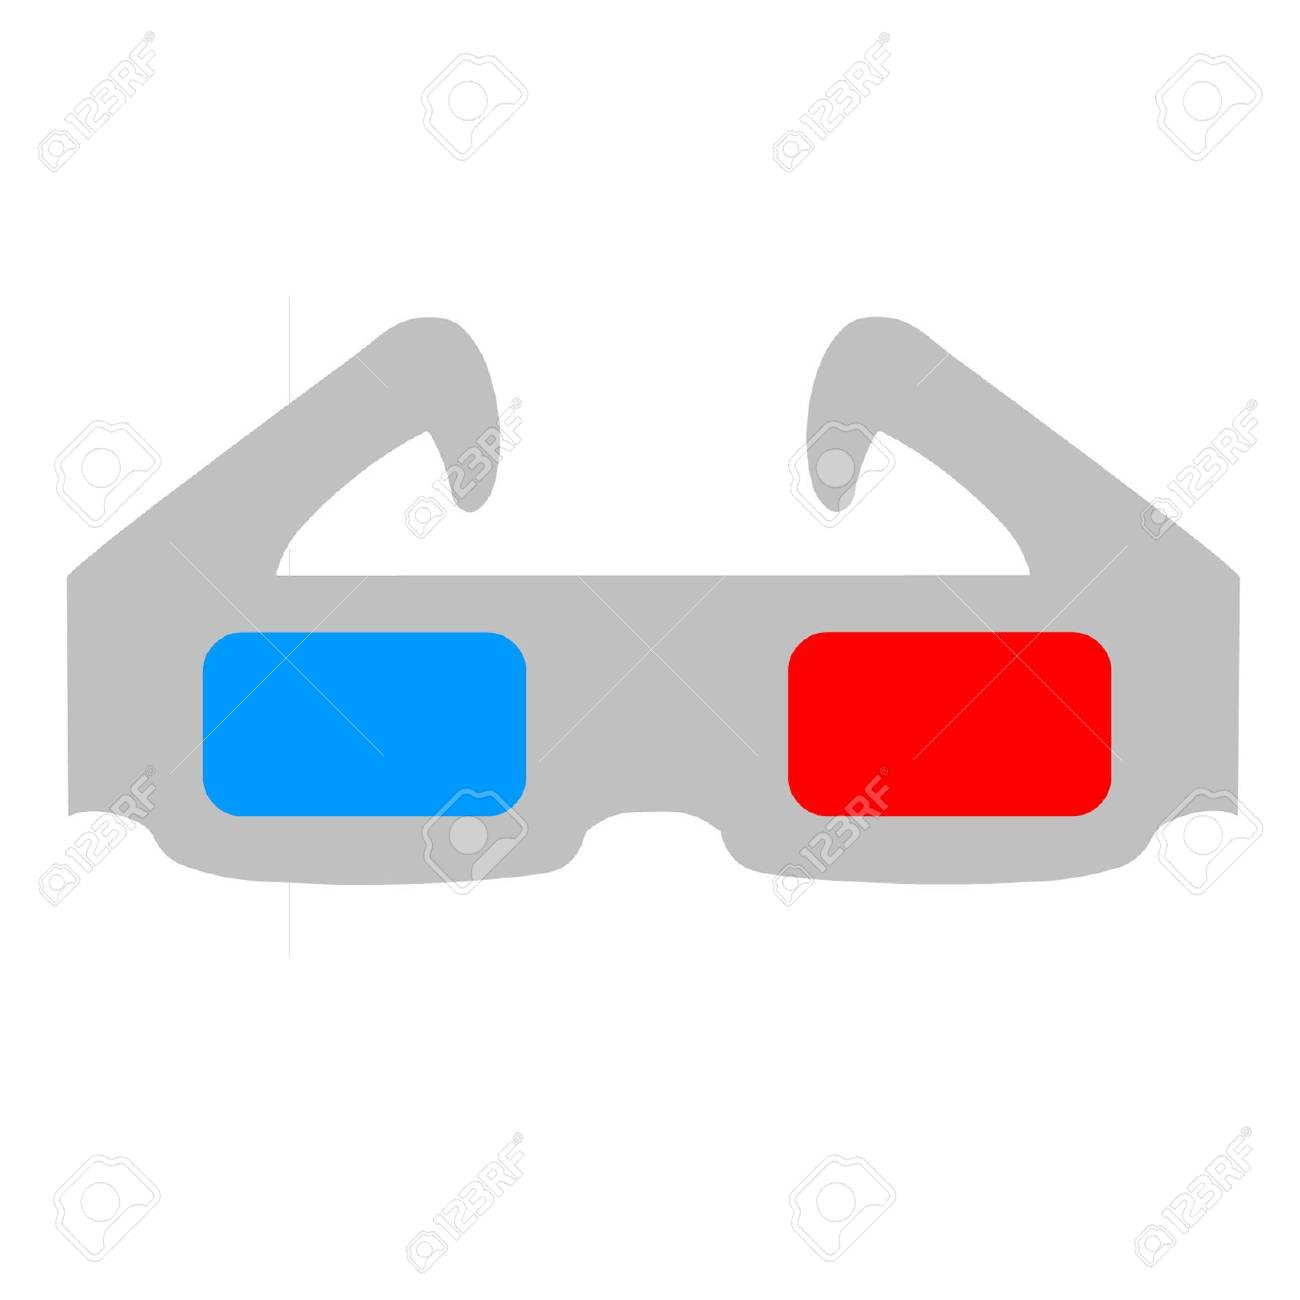 3D Glasses Stock Vector - 17689788